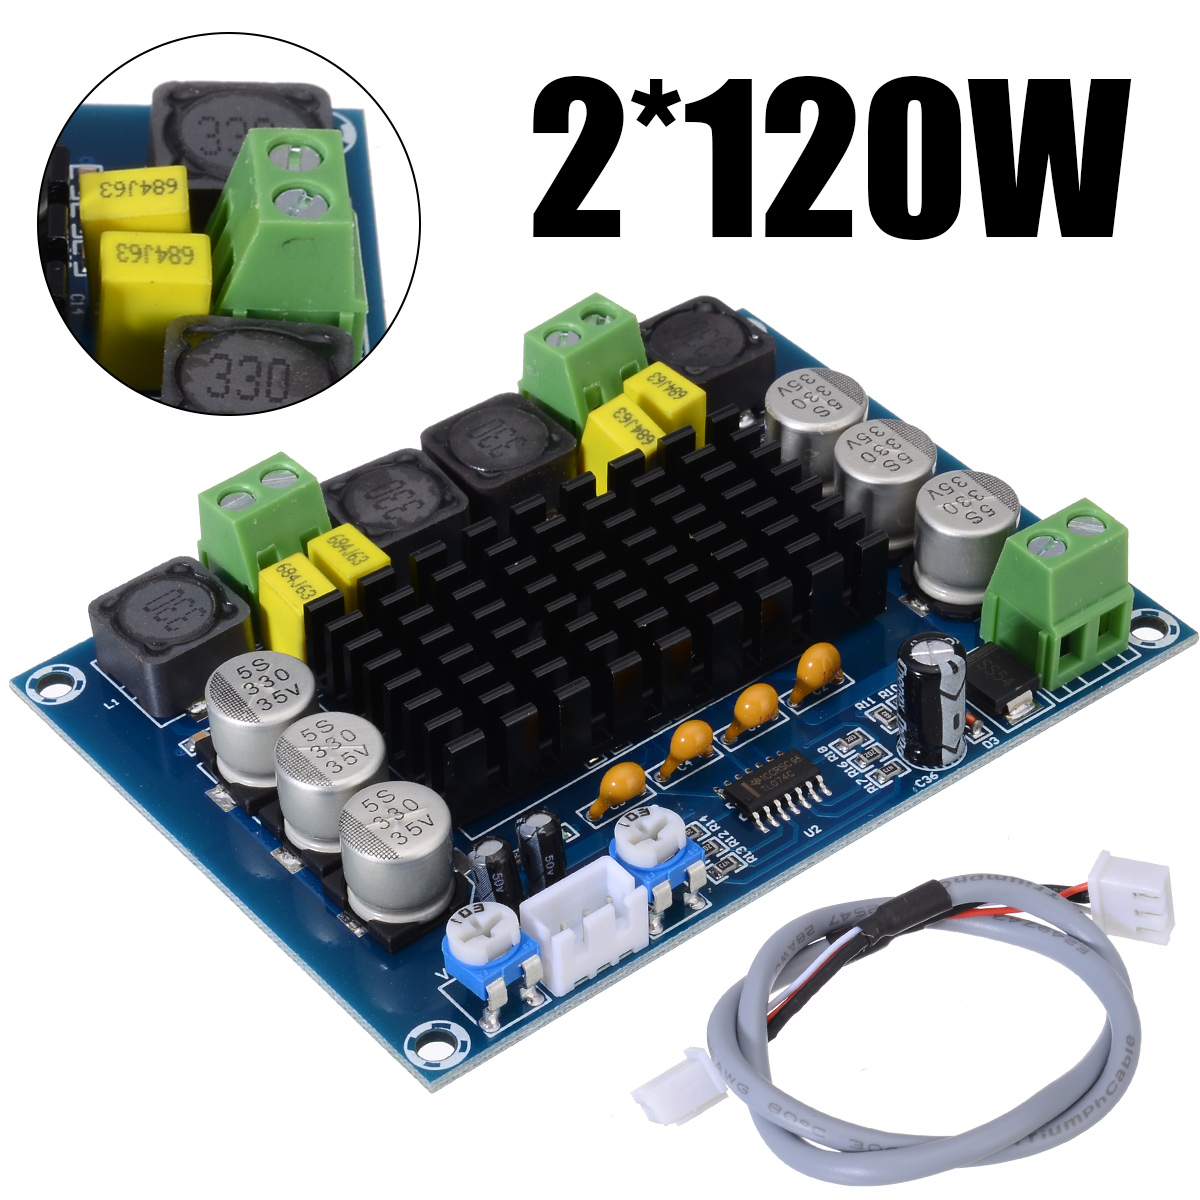 New TPA3116D2 Dual channel Amplifier Boards 2x120W High Power Digital Audio Power AMP Board DC 12 26V For Speaker-in Amplifier from Consumer Electronics